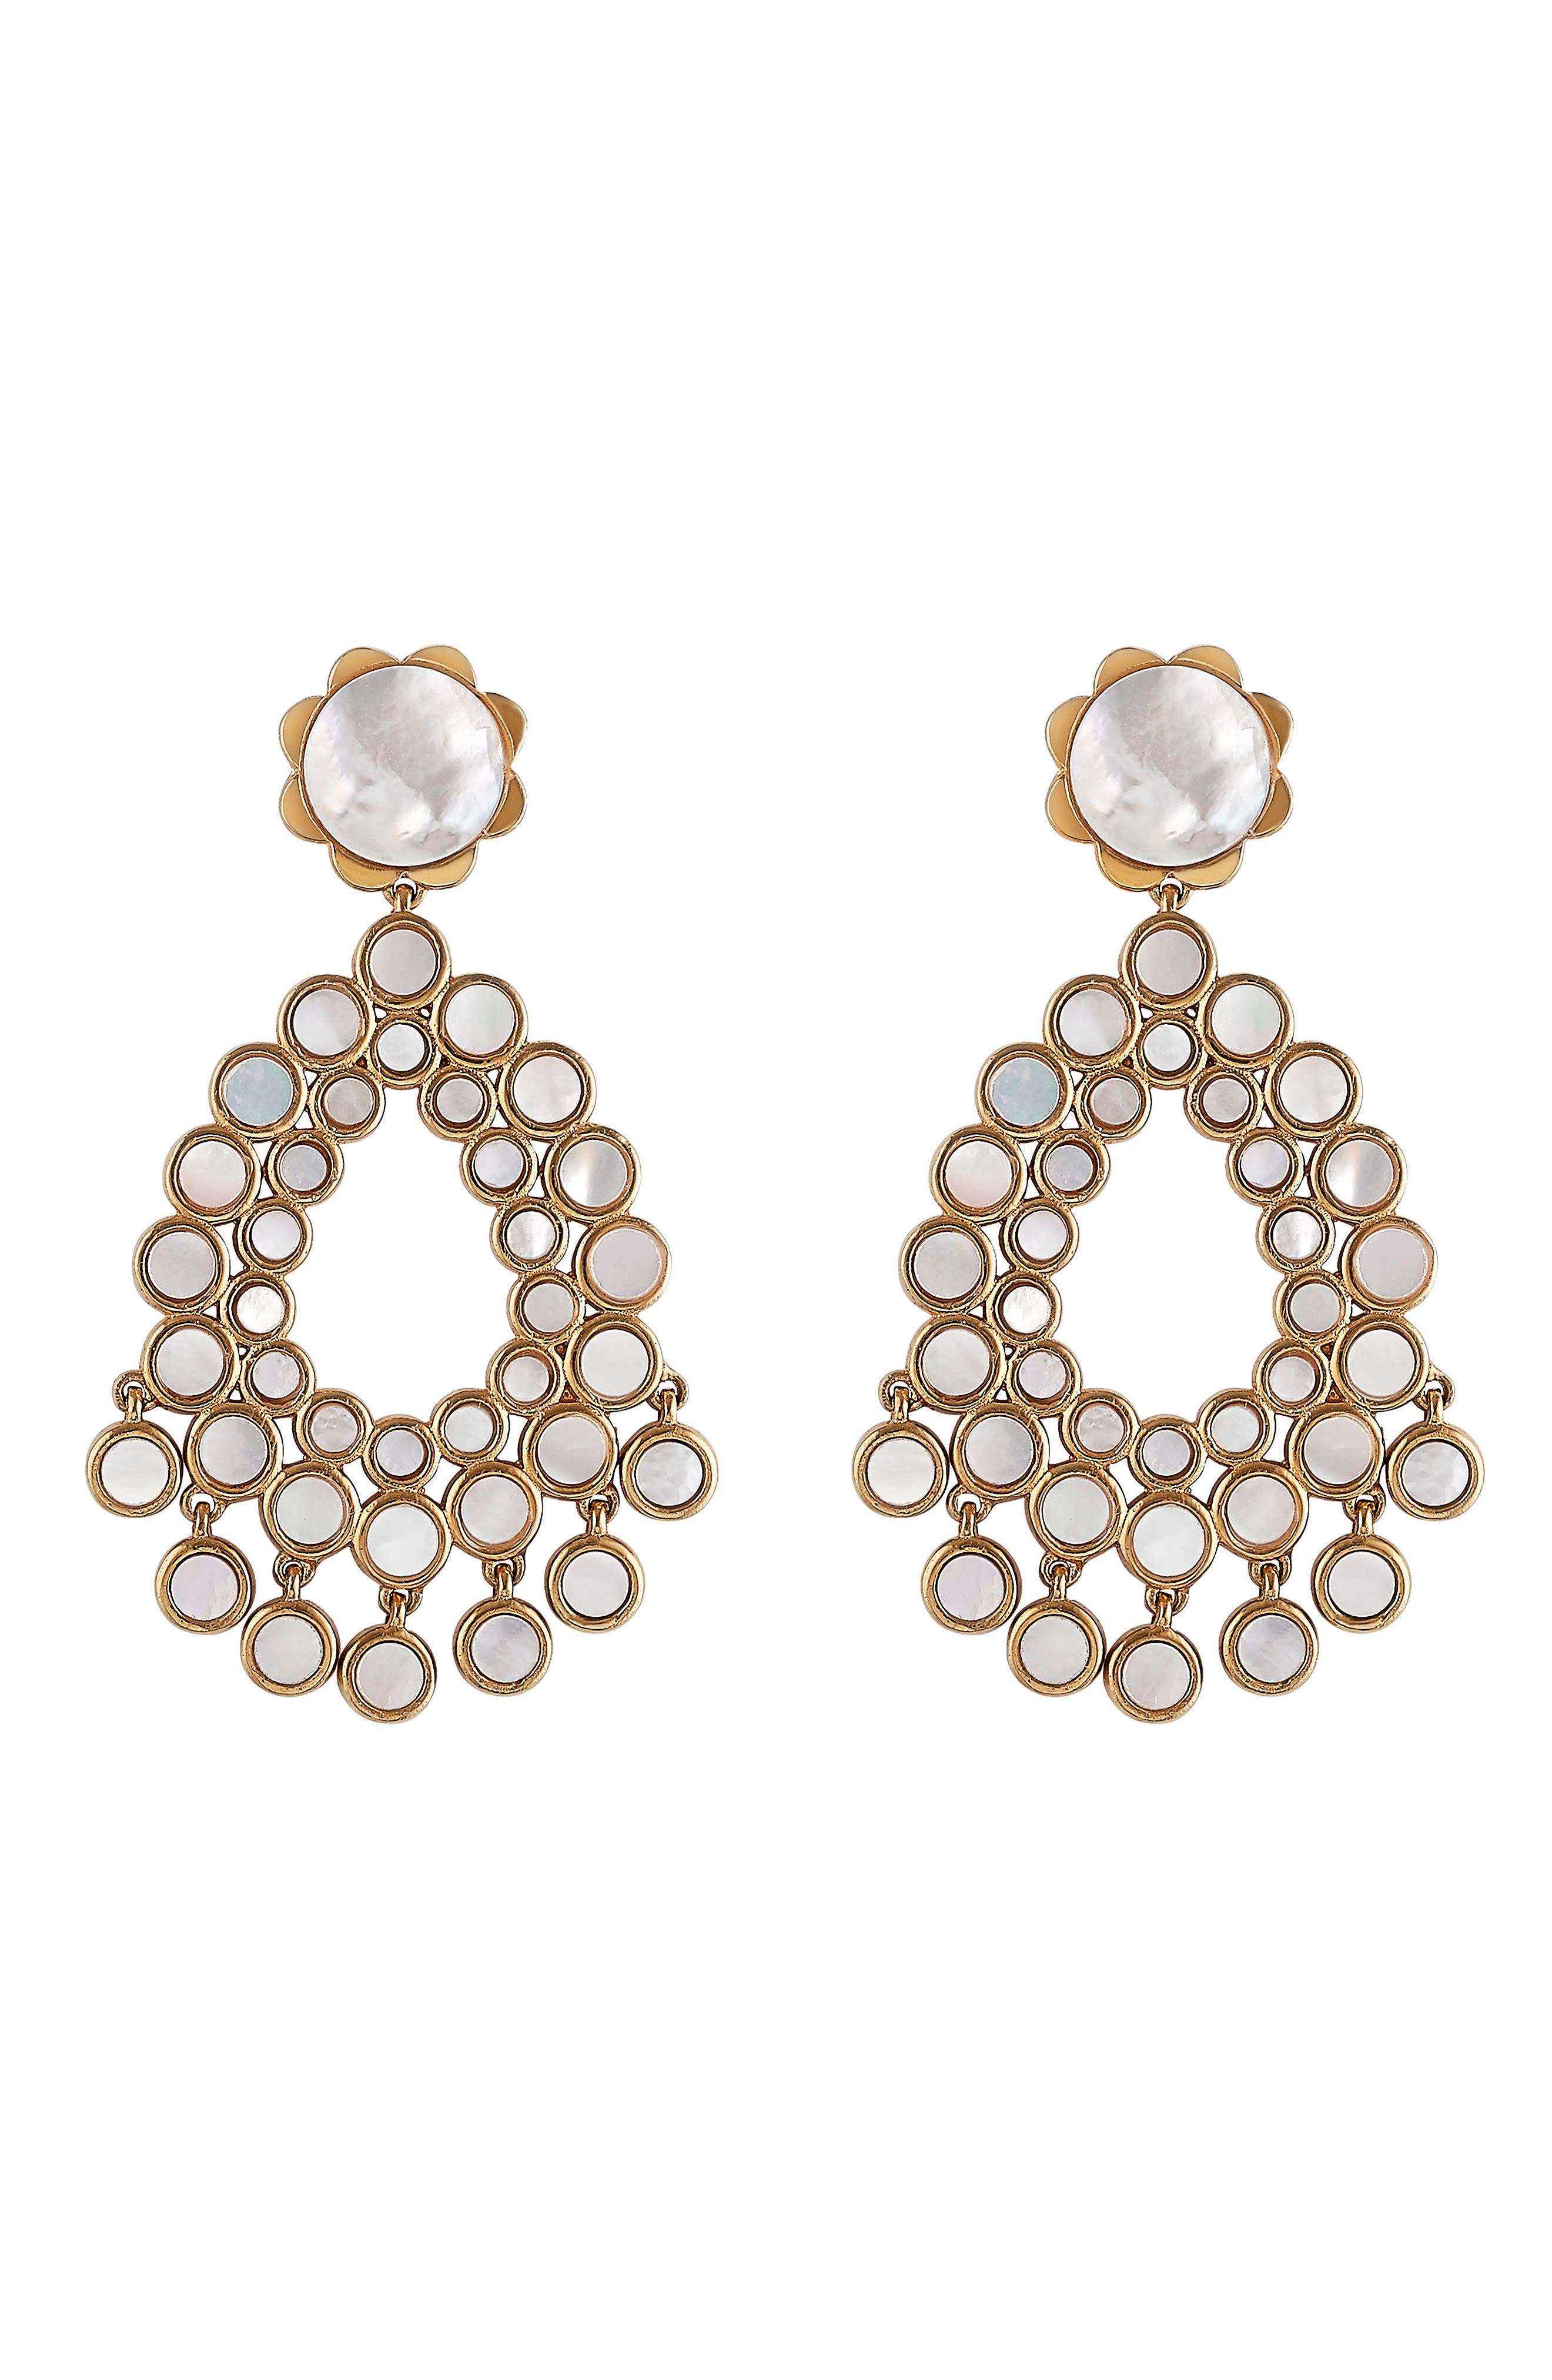 Flower Chandelier Earrings,                             Main thumbnail 1, color,                             Gold - Mother Of Pearl